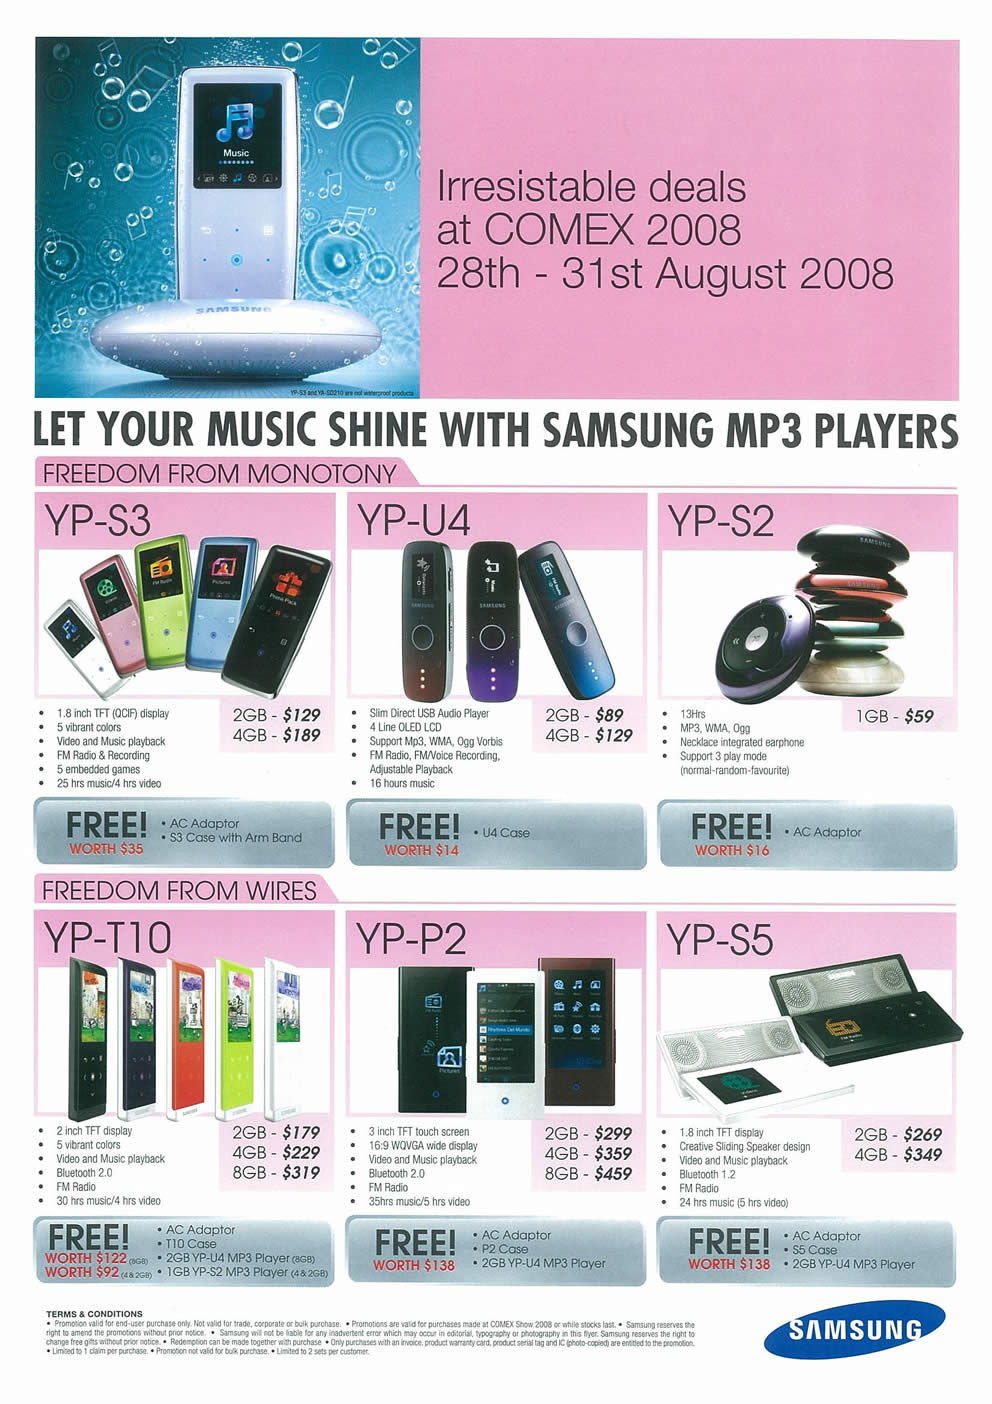 Comex 2008 price list image brochure of Samsung MP3 Players